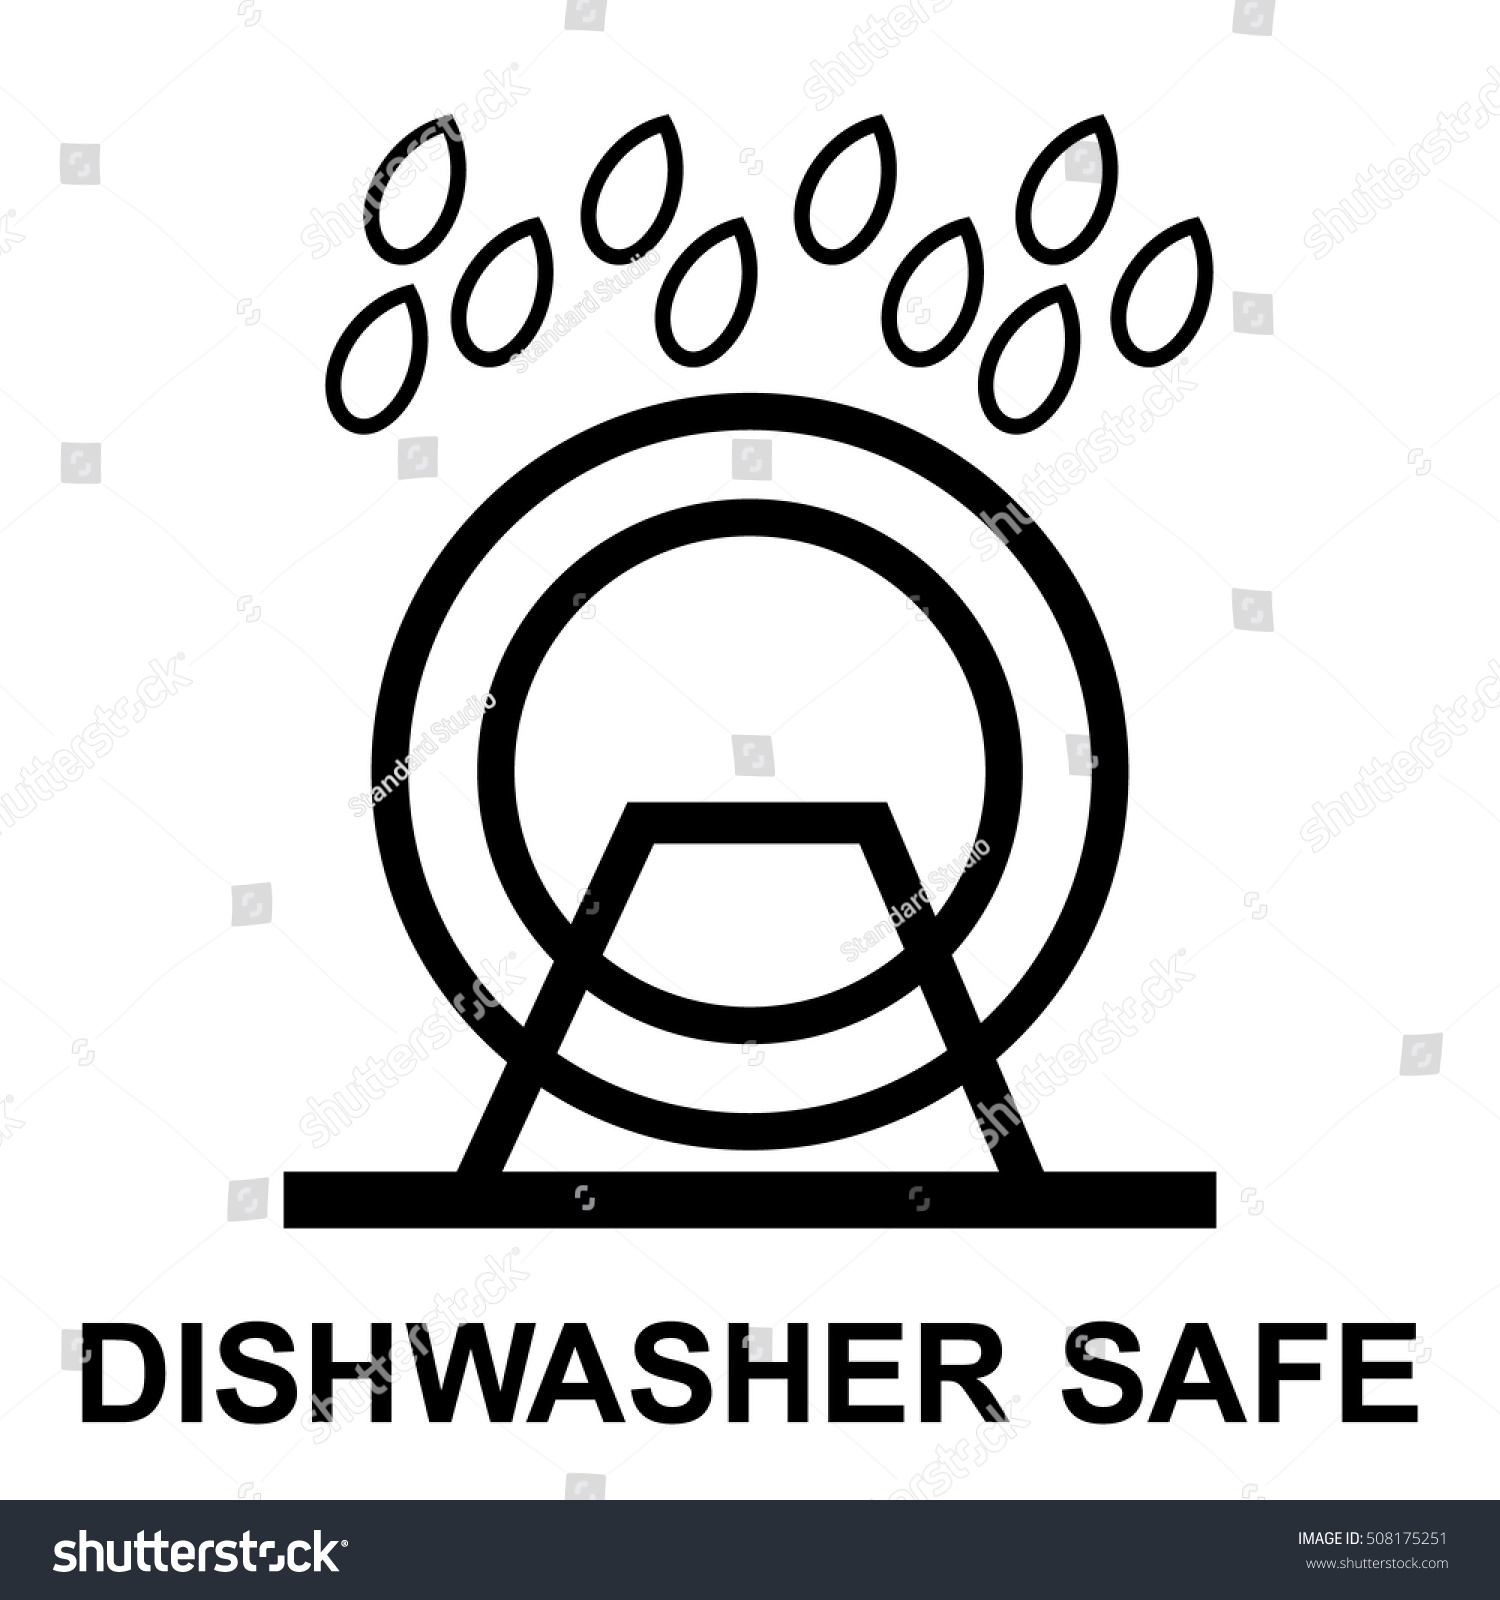 Dishwasher Safe Symbol Isolated Dishwasher Safe Stock Vector